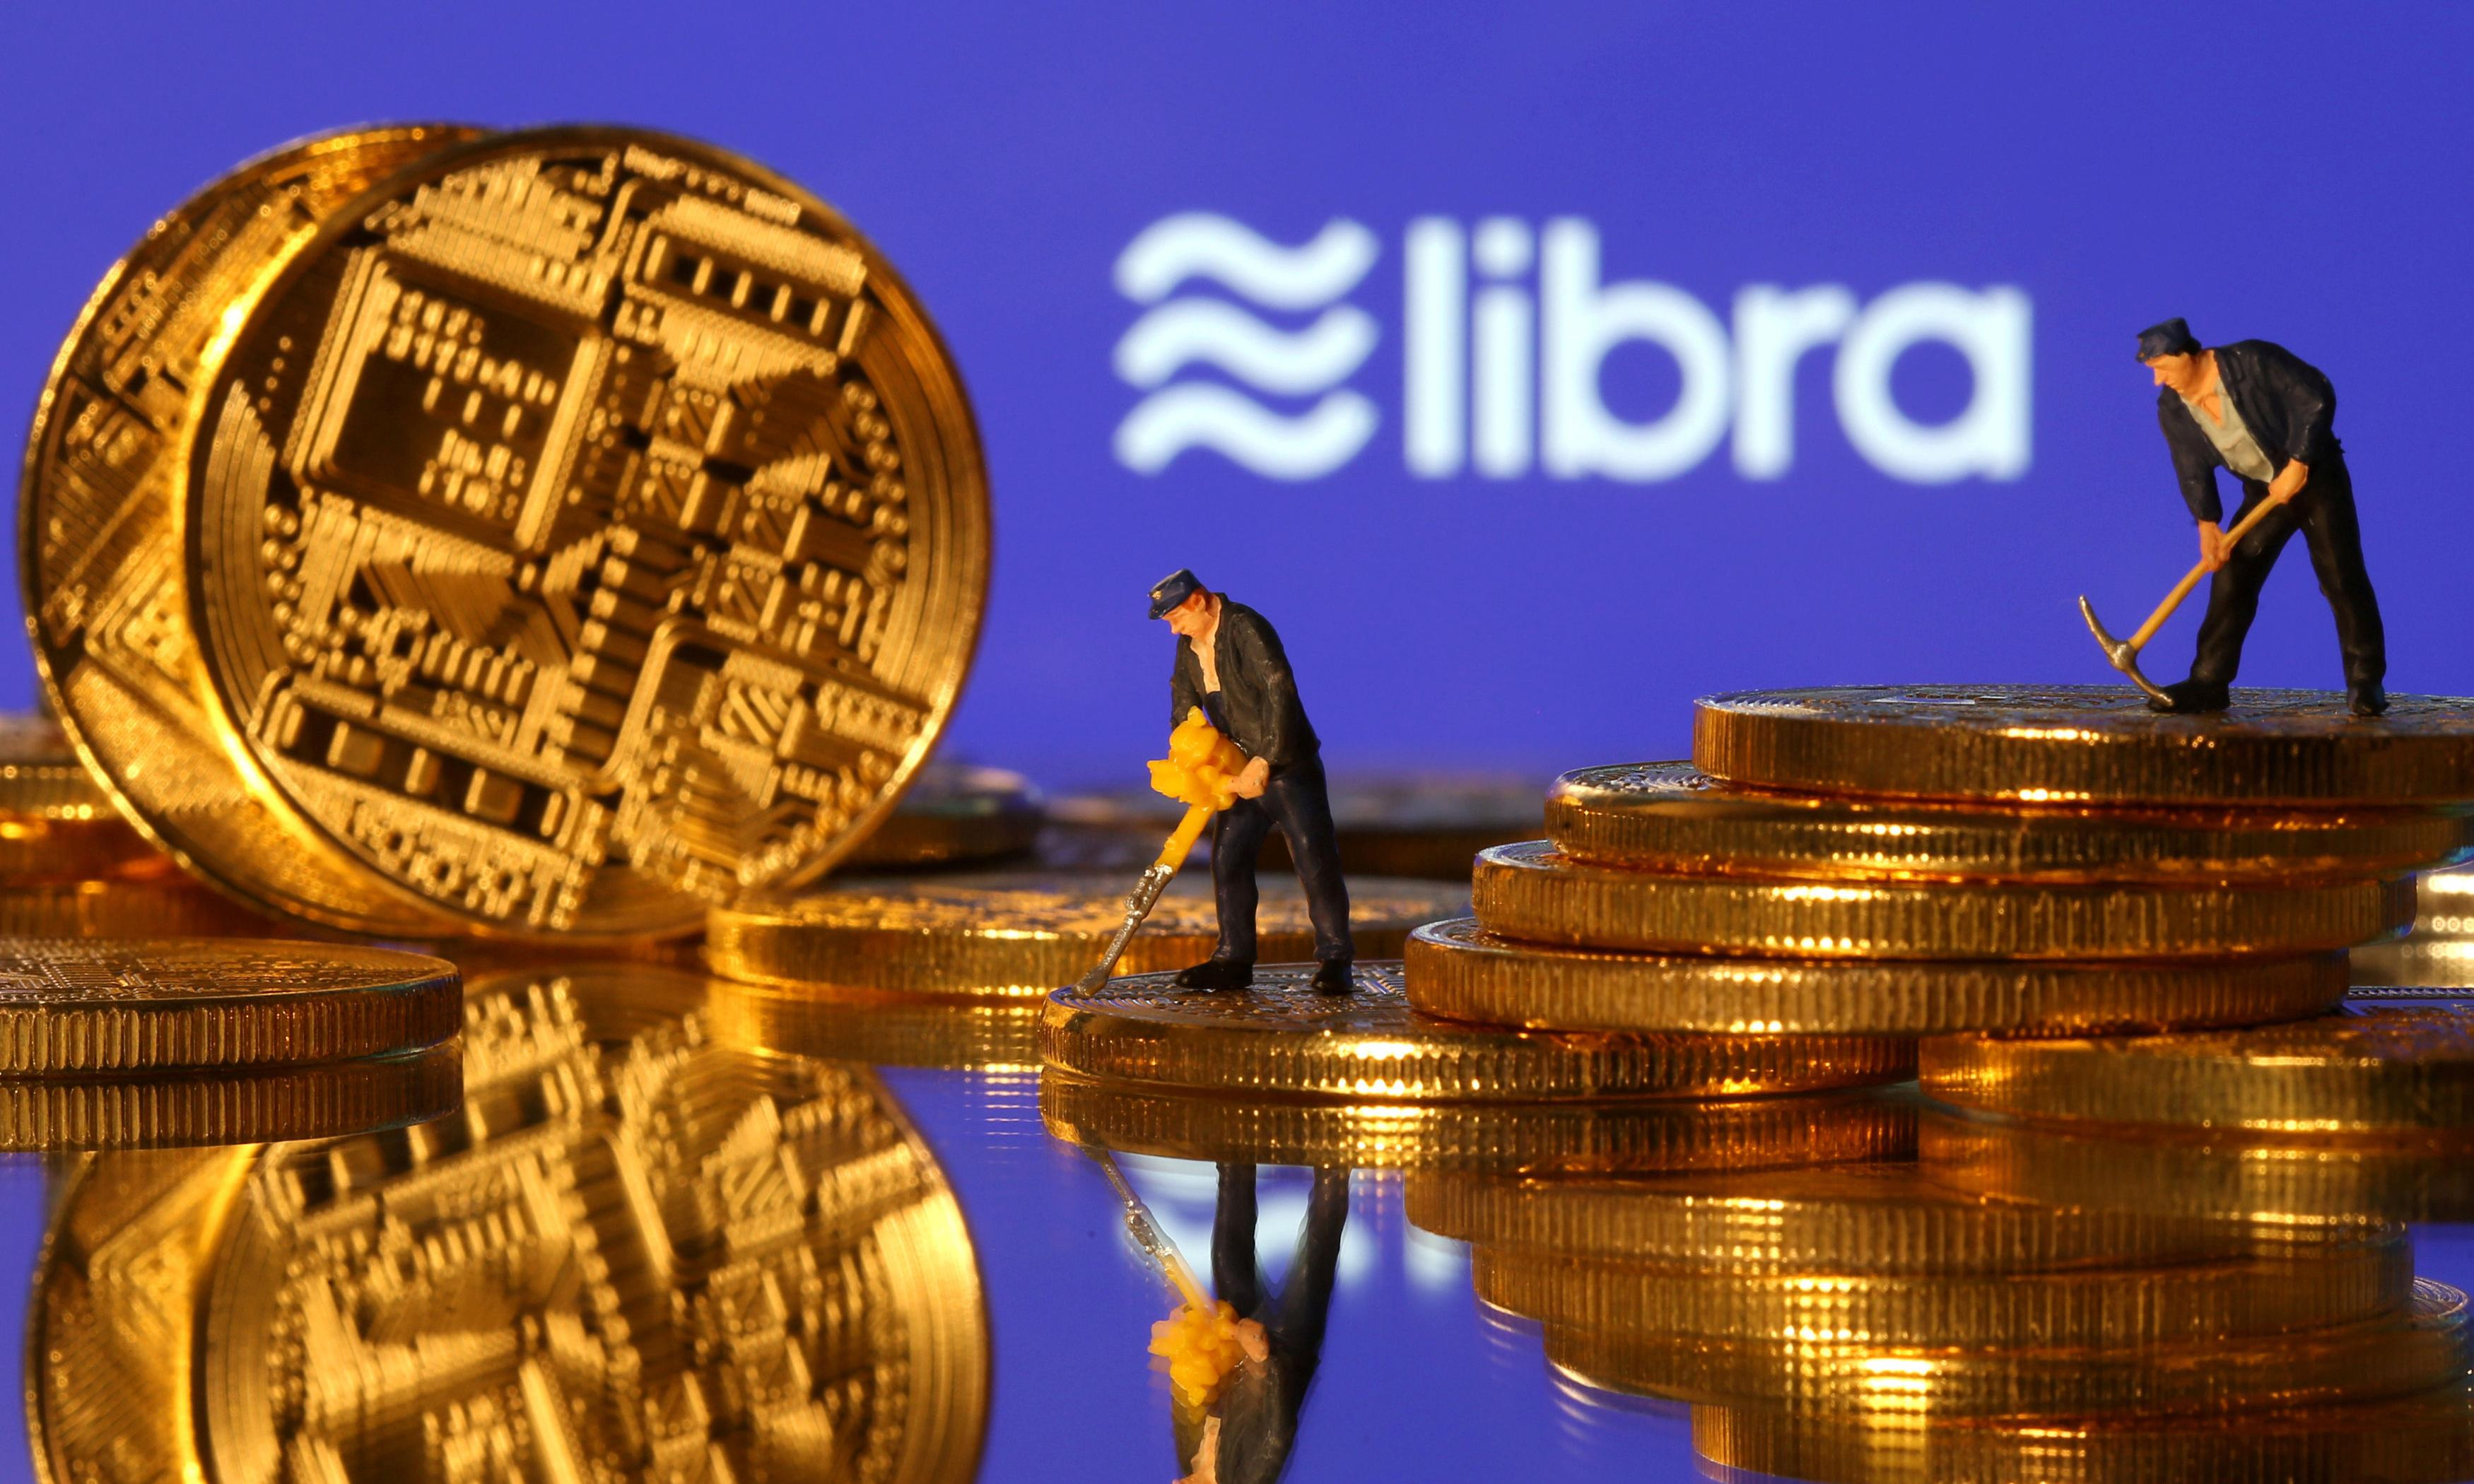 Facebook's Libra cryptocurrency faces questions from international regulators